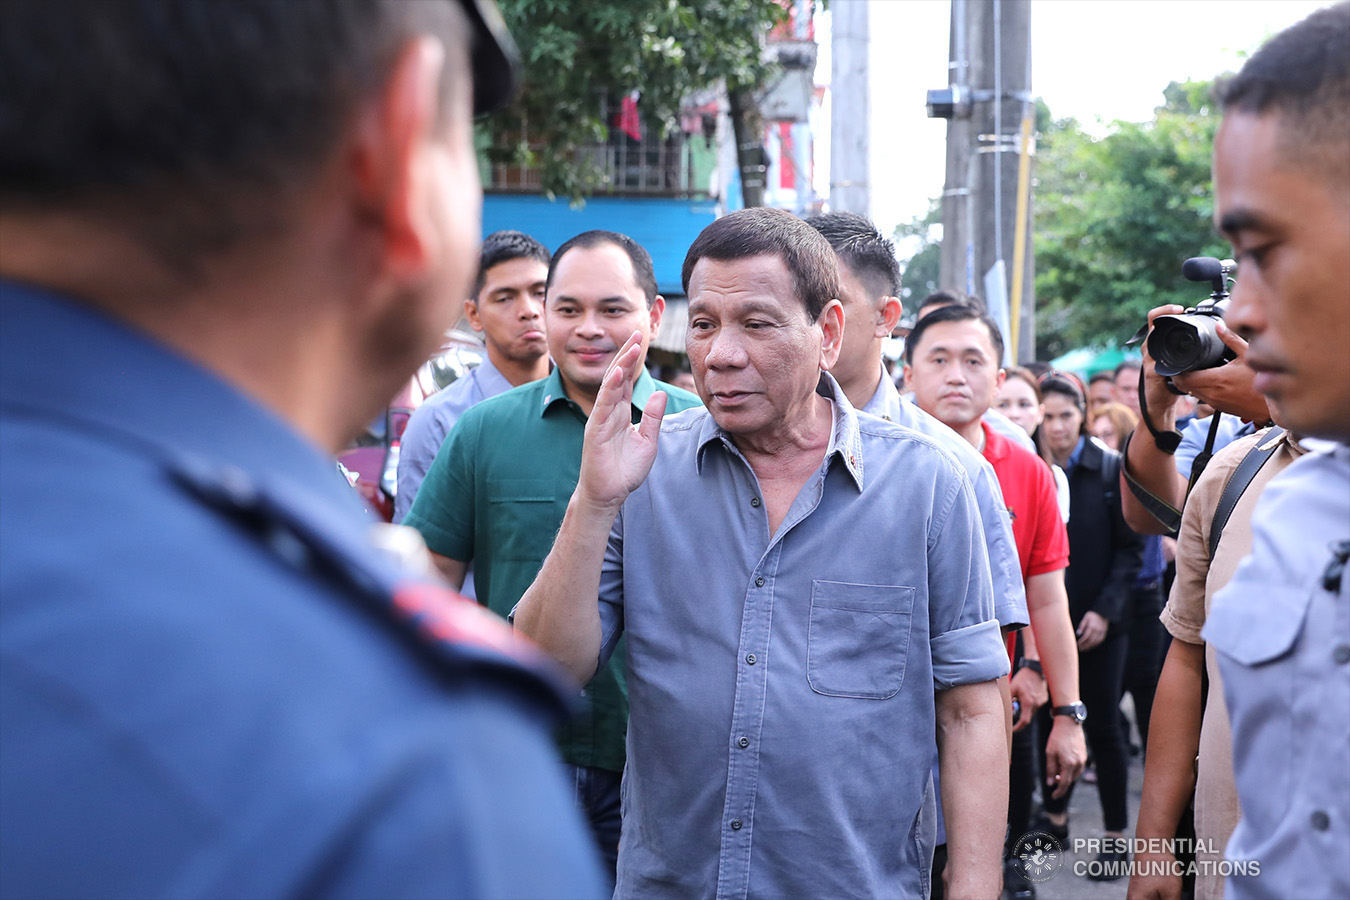 President Rodrigo Roa Duterte salutes in response to police officials who welcomed him at his arrival at the Quezon Convention Center in Lucena City, province of Quezon on his way to the annual assembly of the Provincial Union of Leaders Against Illegality (PULI) on January 22, 2019. VALERIE ESCALERA/PRESIDENTIAL PHOTO